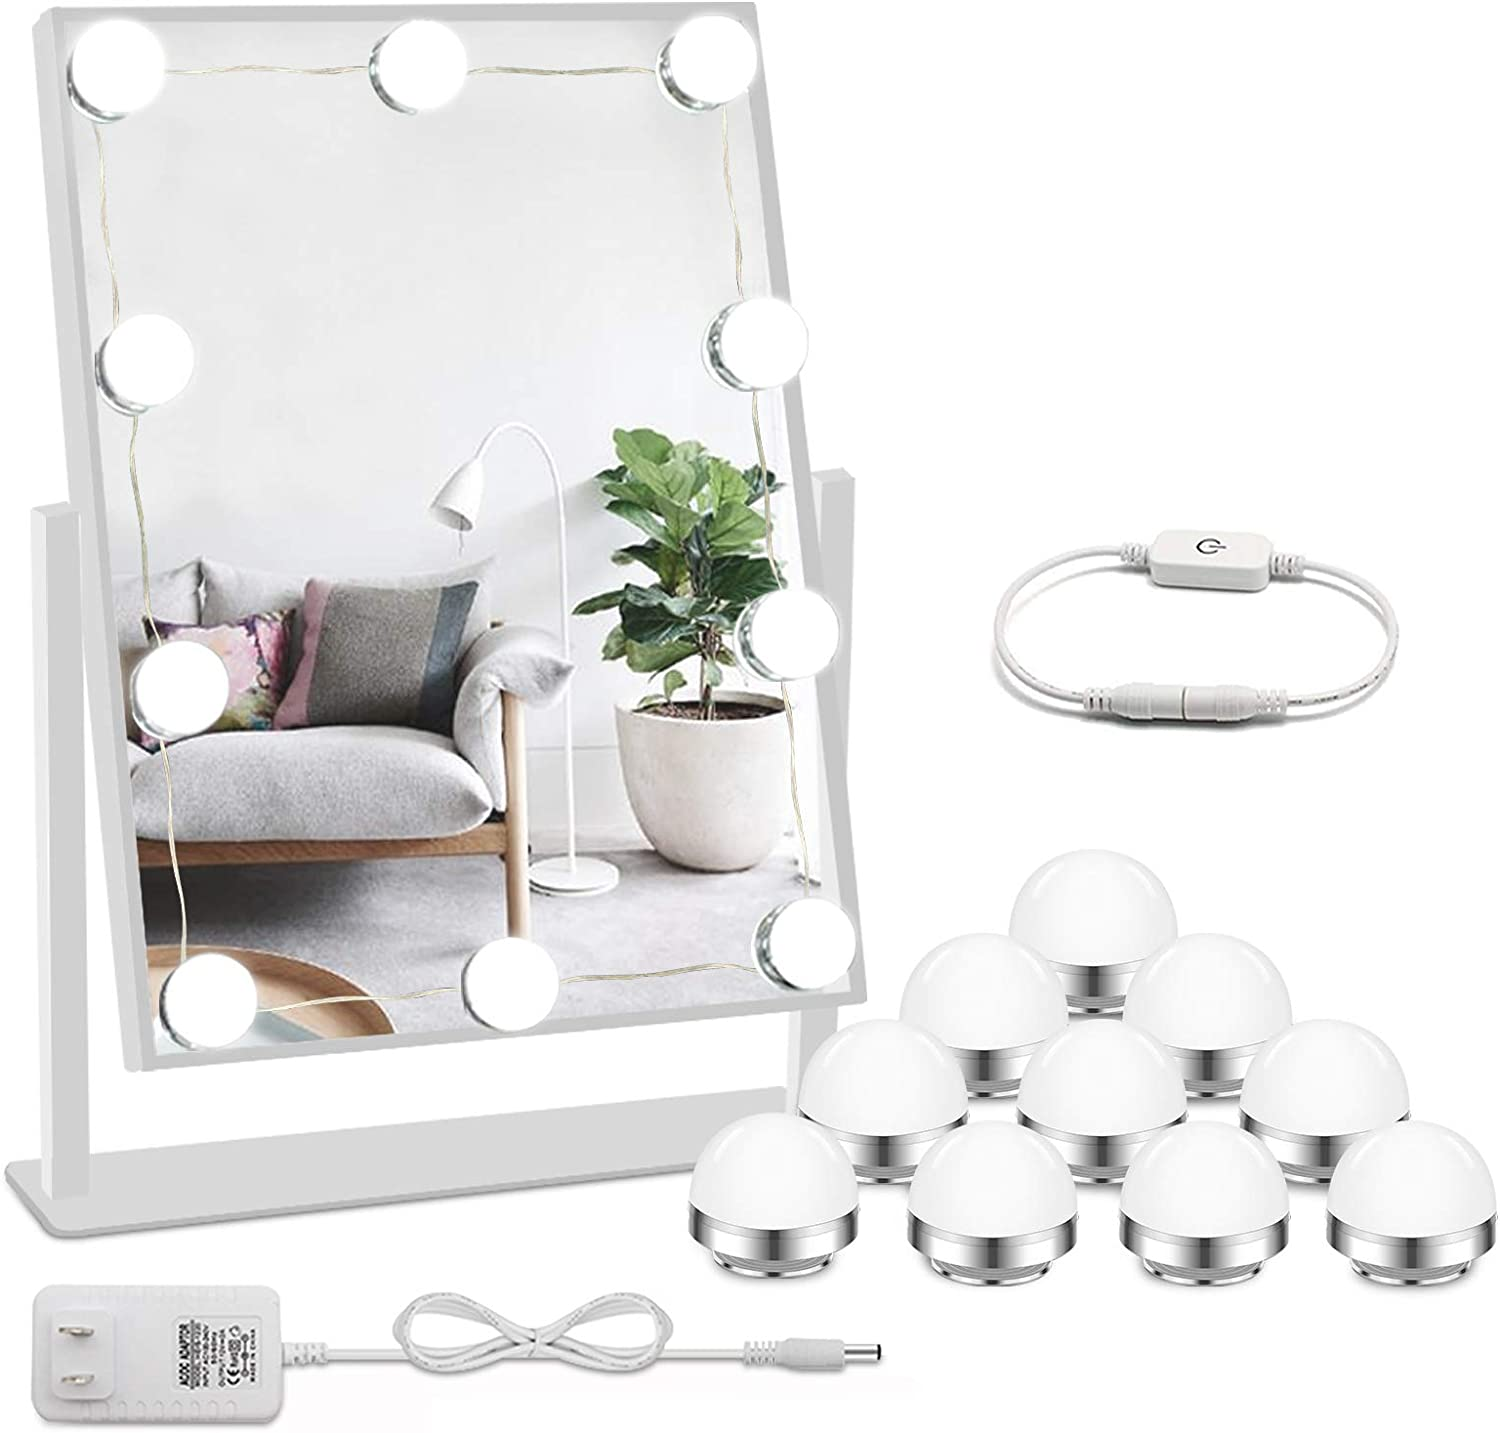 Laza 10-Bulb Hollywood Style DIY LED Vanity Lights Makeup Lighting Fixture Strip with 3 Color Modes and USB Port for Full Body Length Makeup Mirror /& Bathroom Wall Mirror Mirror Not Included